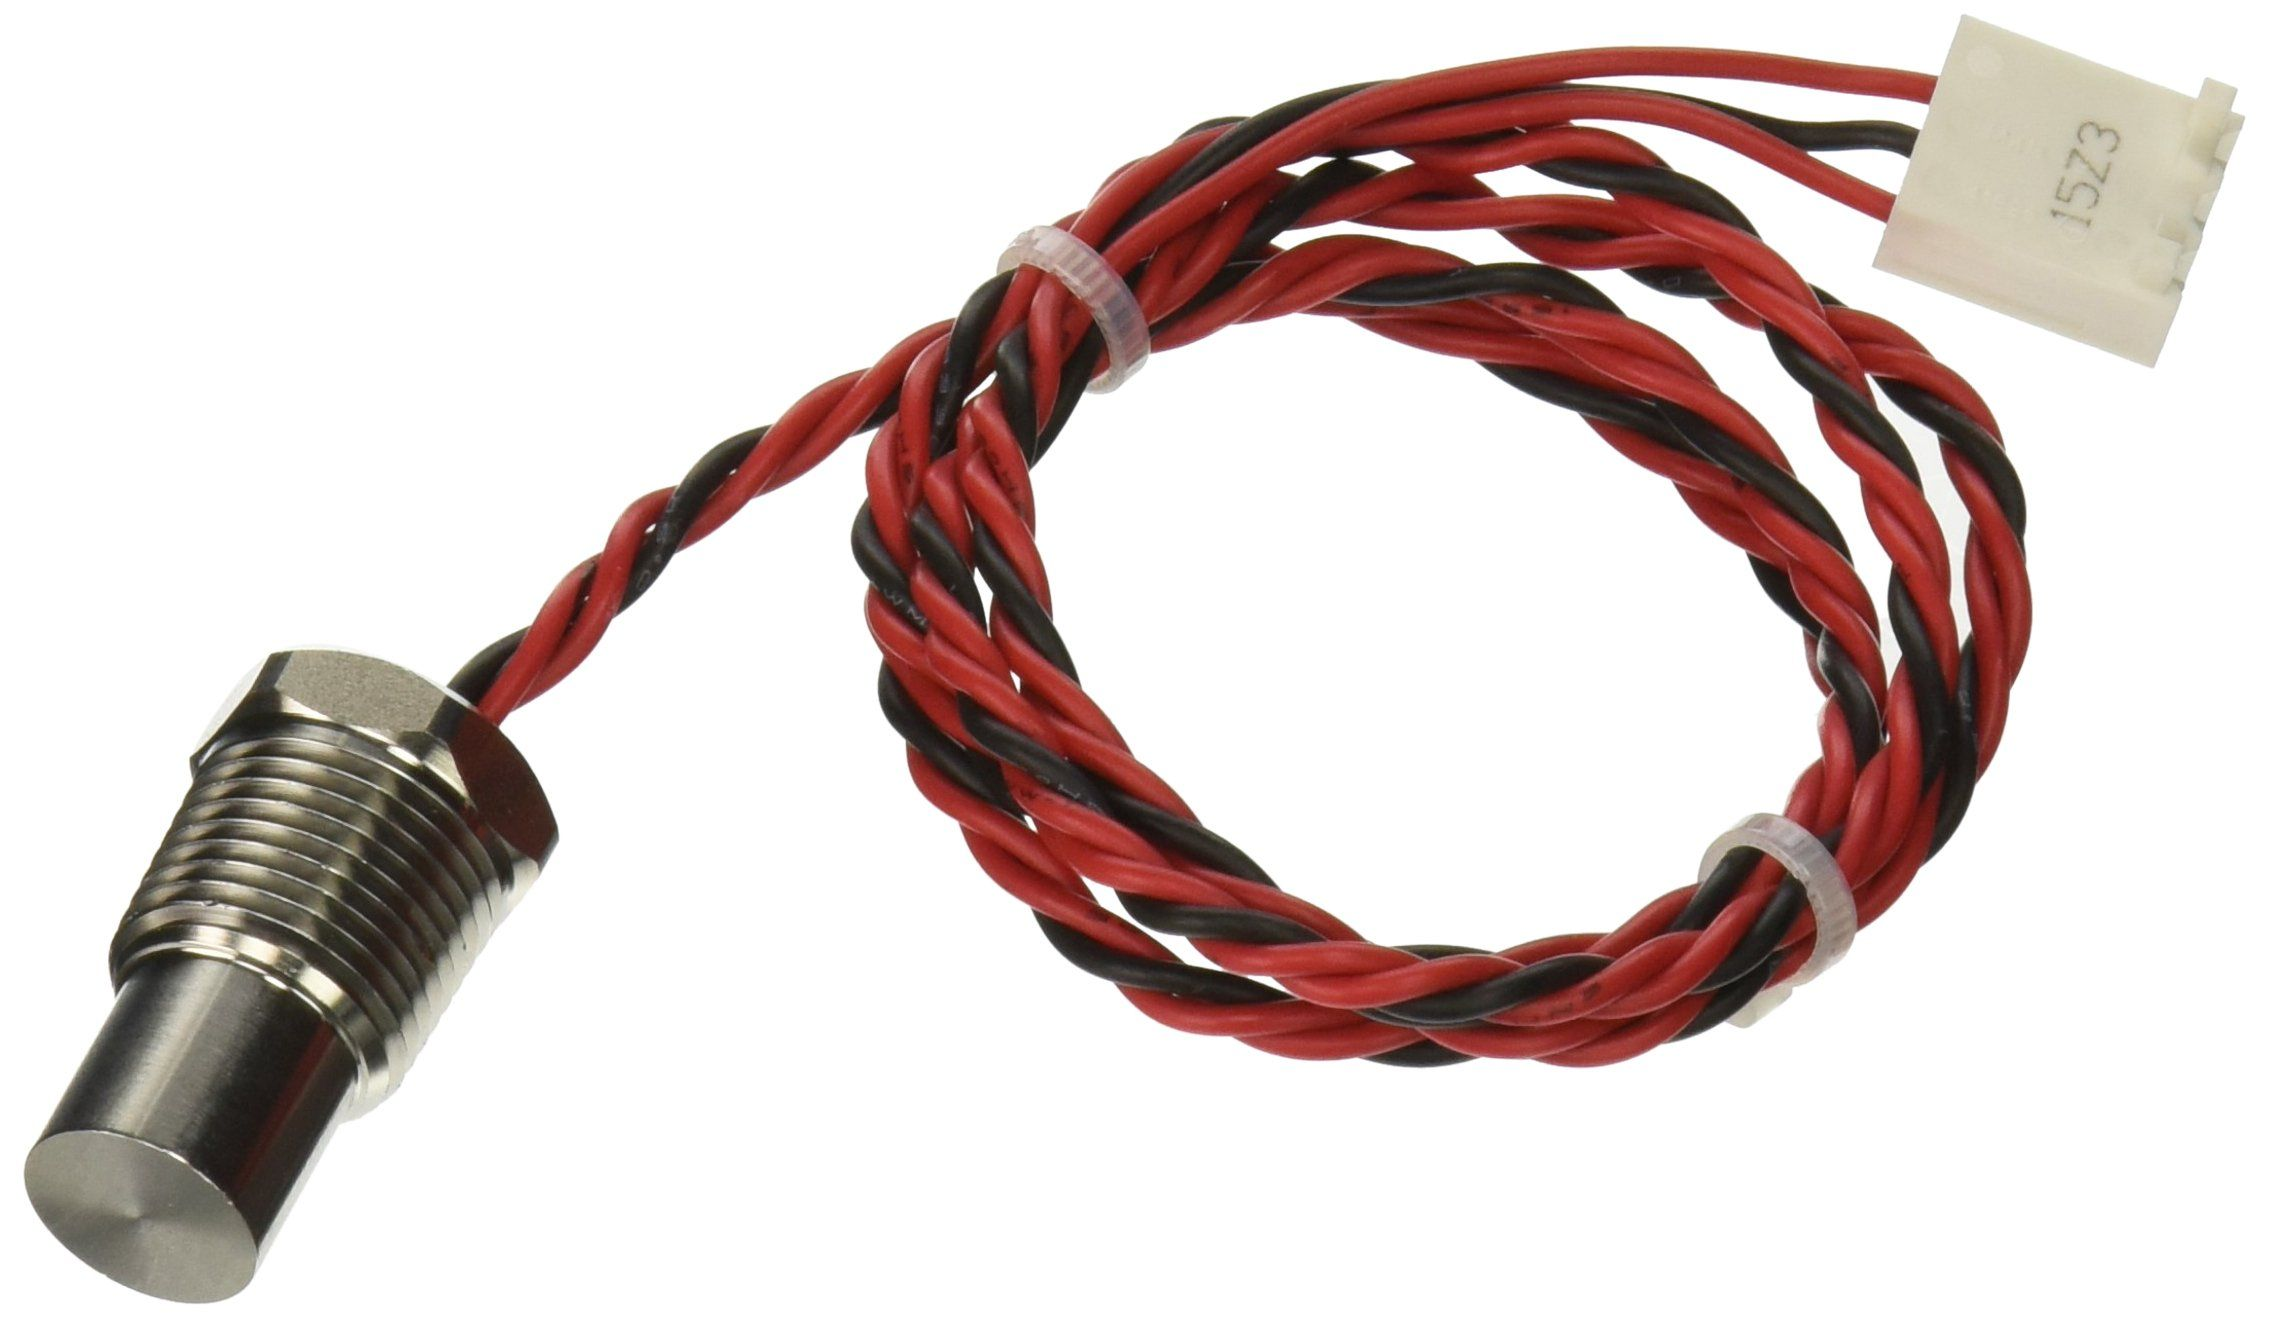 Hayward Idxlter1930 Heater Thermistor For Hseries Heater Learn More By Visiting The Image Link It Is An Affi Hot Water Heater Heater Tankless Water Heater